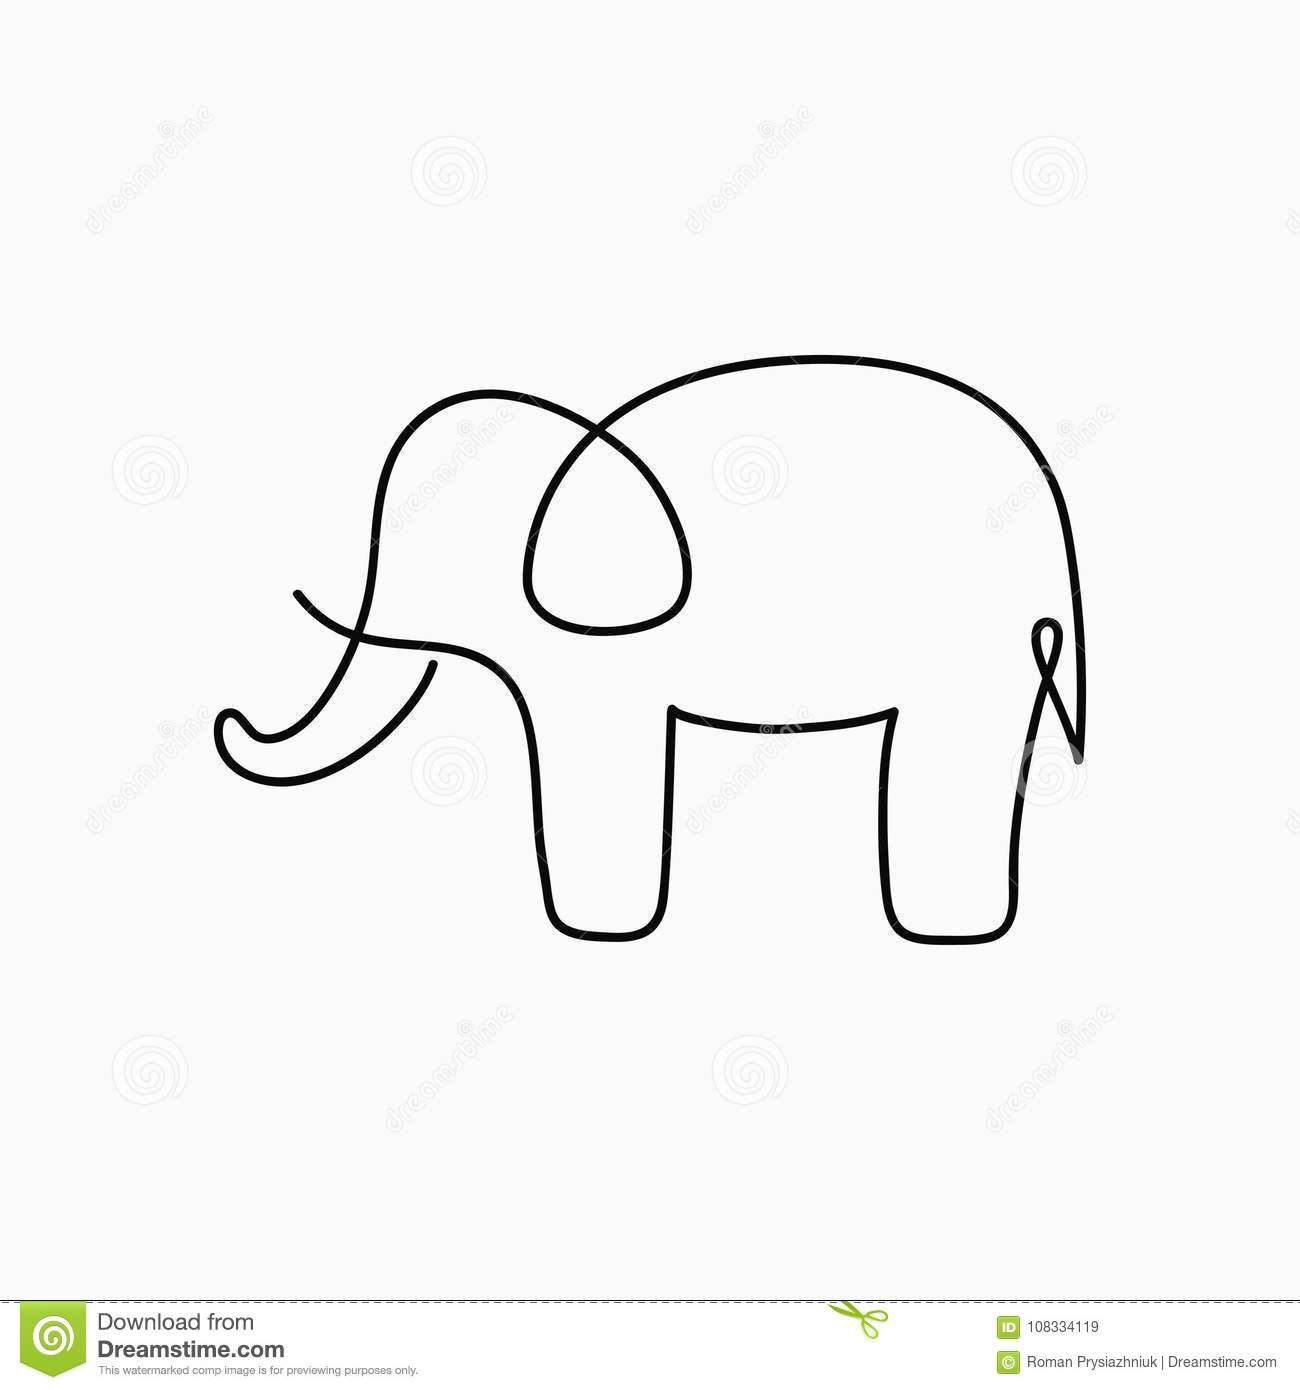 Minimalist Elephant Drawing: Illustration About Elephant One Line Drawing. Continuous